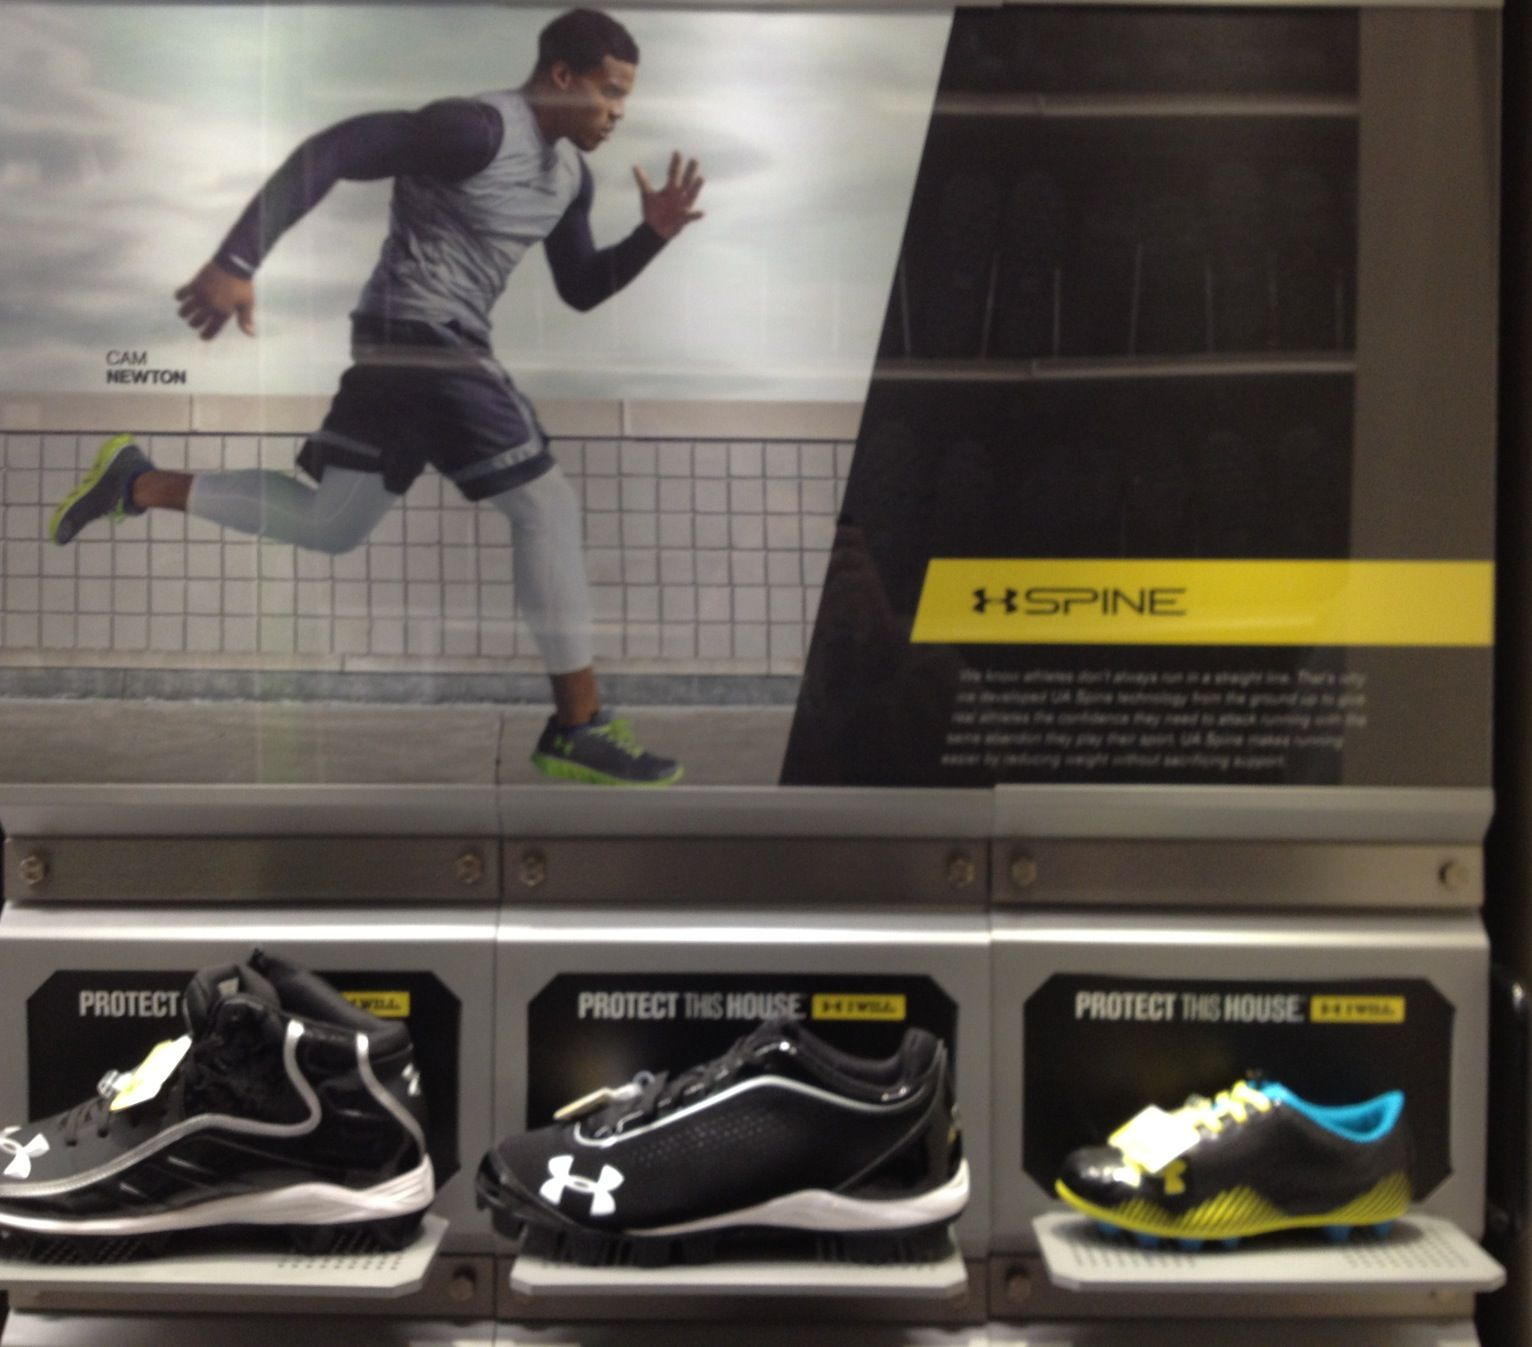 Cam Newton shoe promo Academy Sports and Outdoors